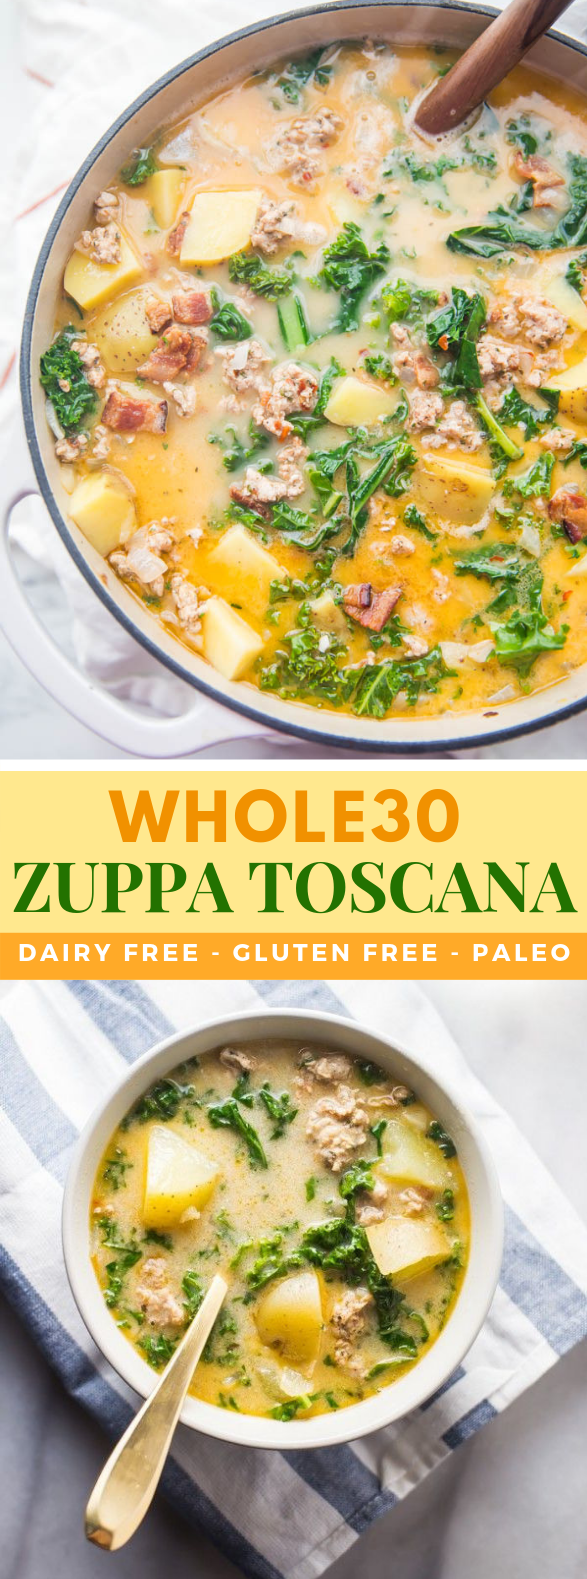 Healthy Zuppa Toscana (Whole30, Paleo, Dairy Free) #sugarfree #diet